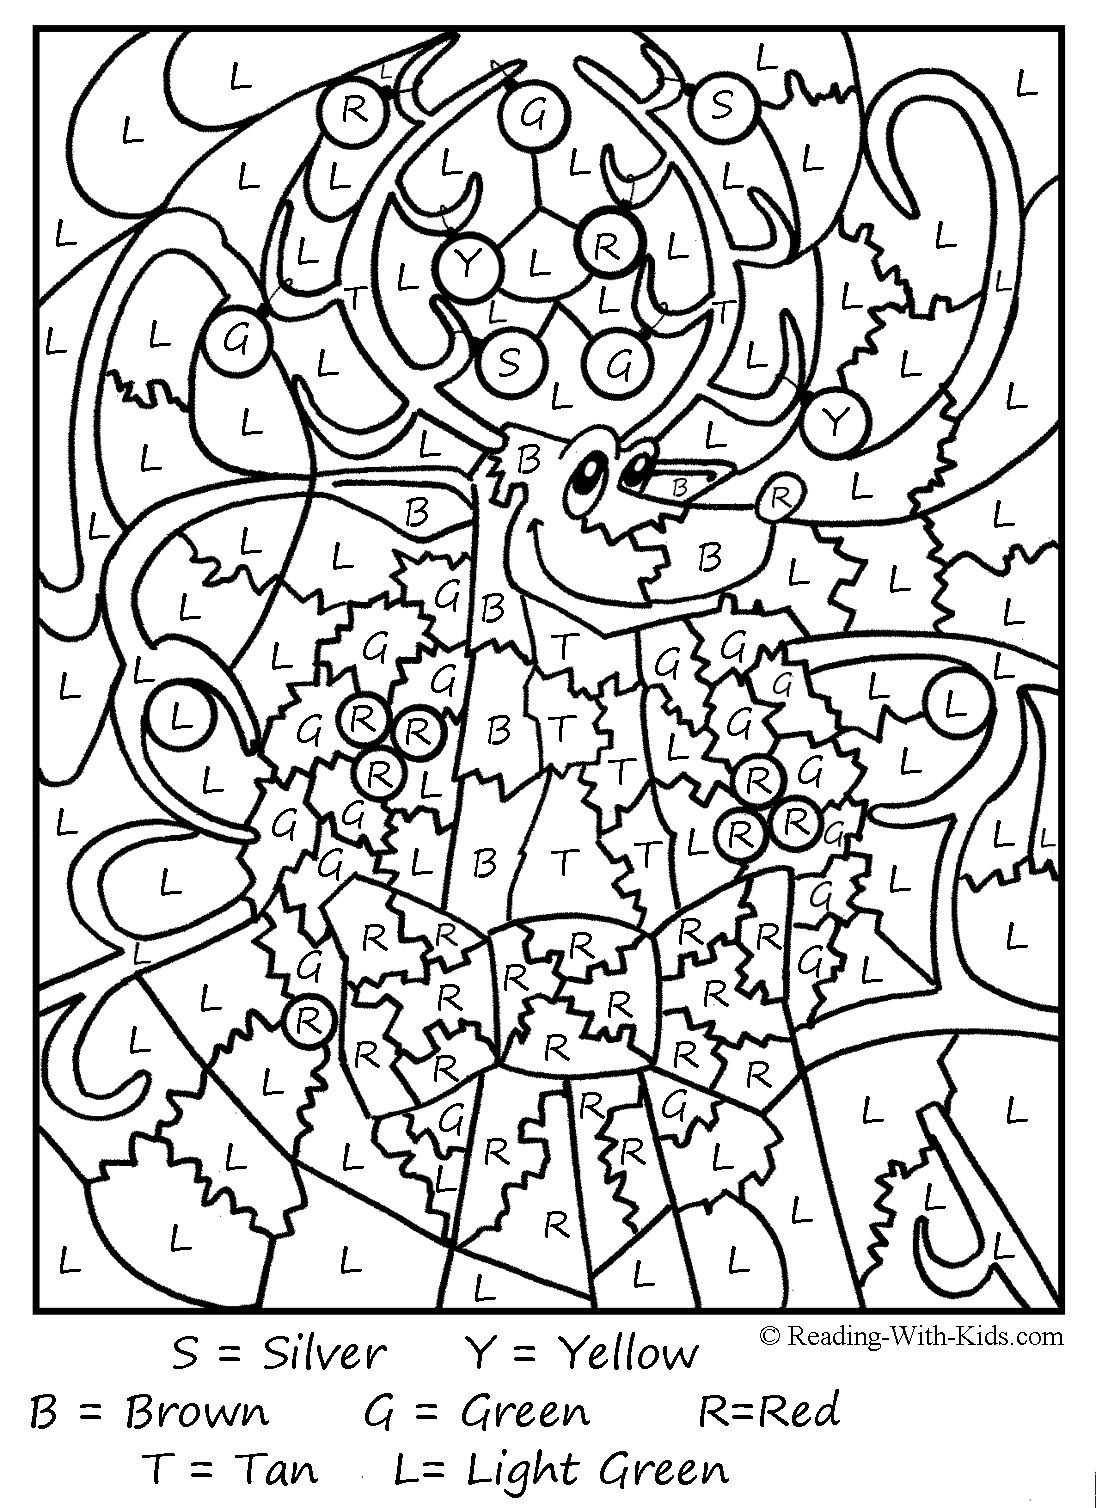 Uncategorized Coloring Pictures To Color color by letter and number coloring pages are fun and